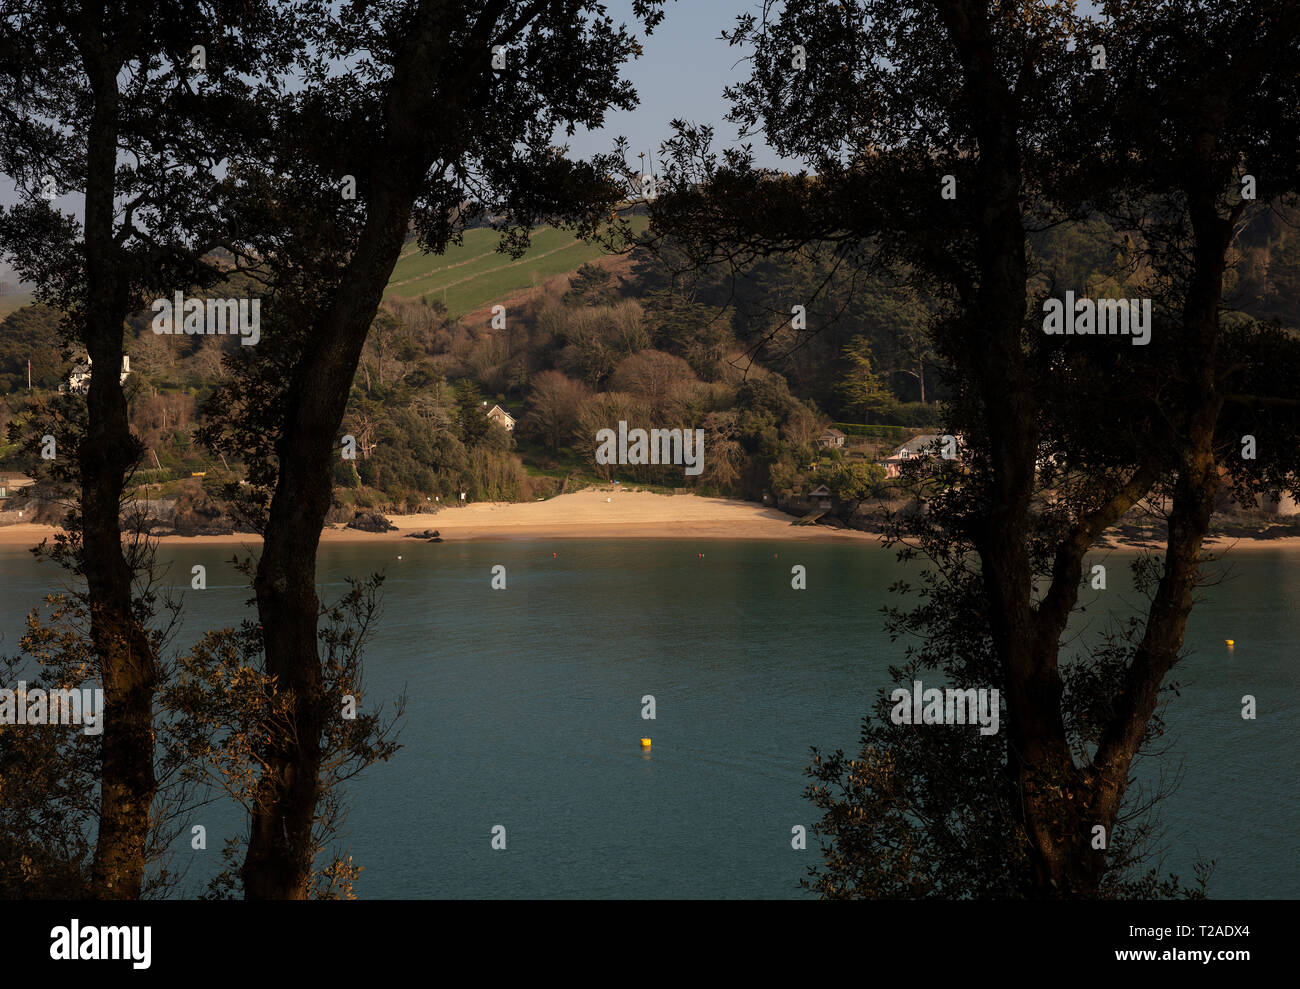 A shot of Smalls Cove on East Portlemouth through trees in Salcombe. - Stock Image